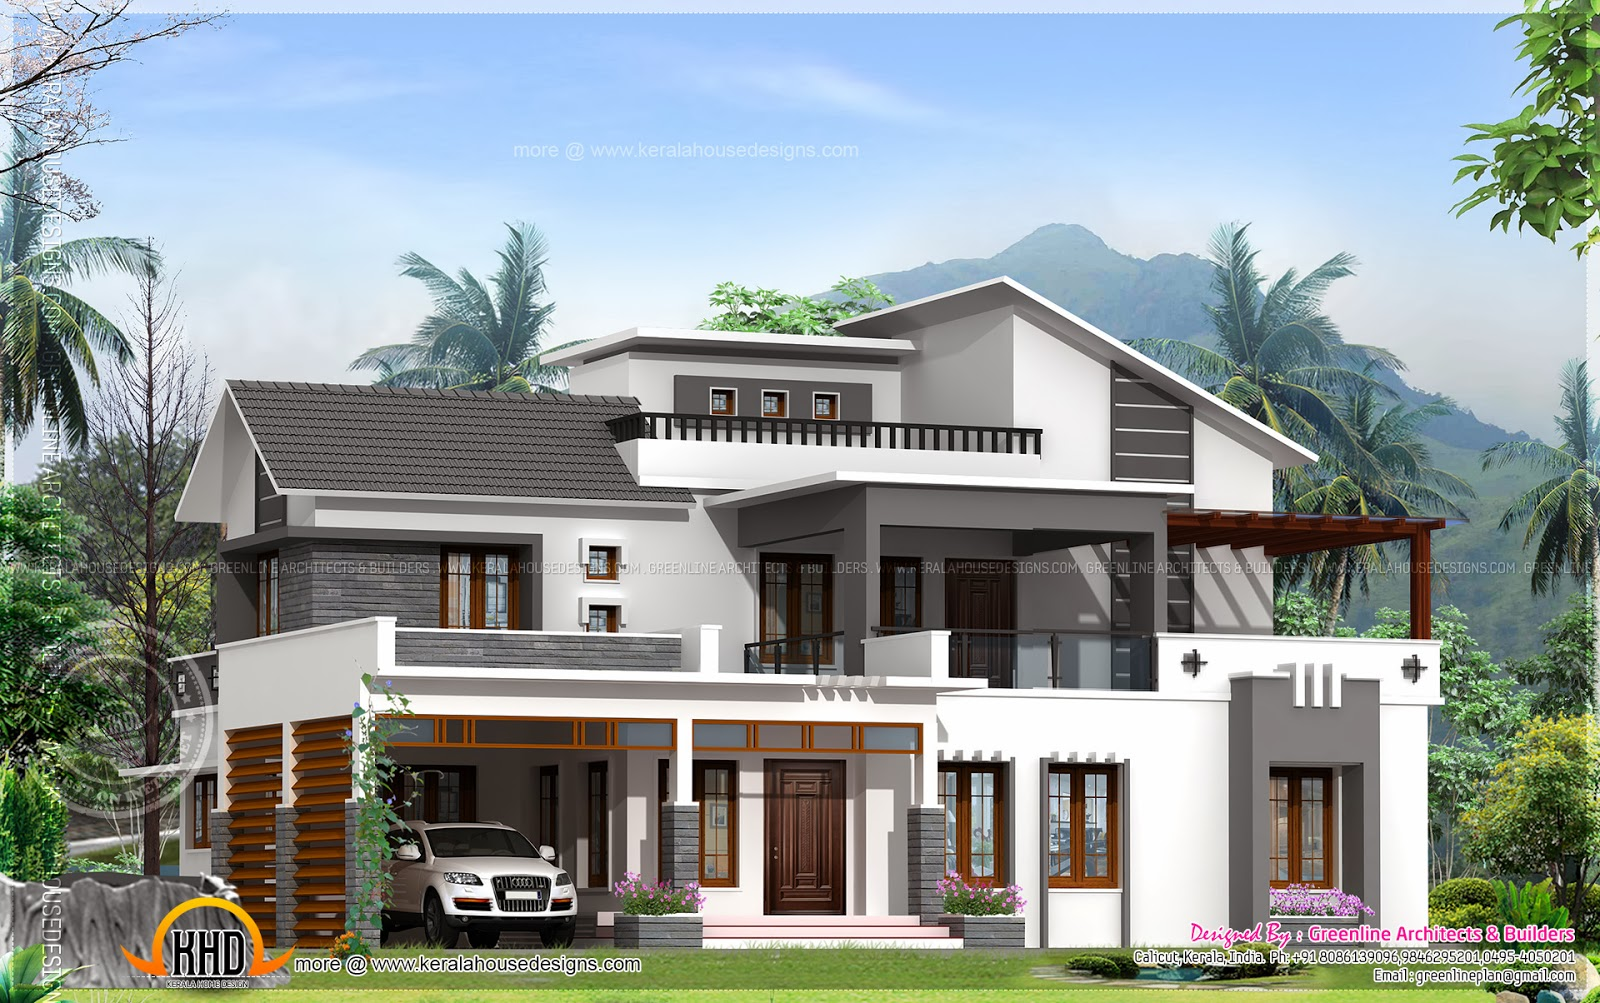 Modern home elevation design kerala home design and for House plans for kerala climate